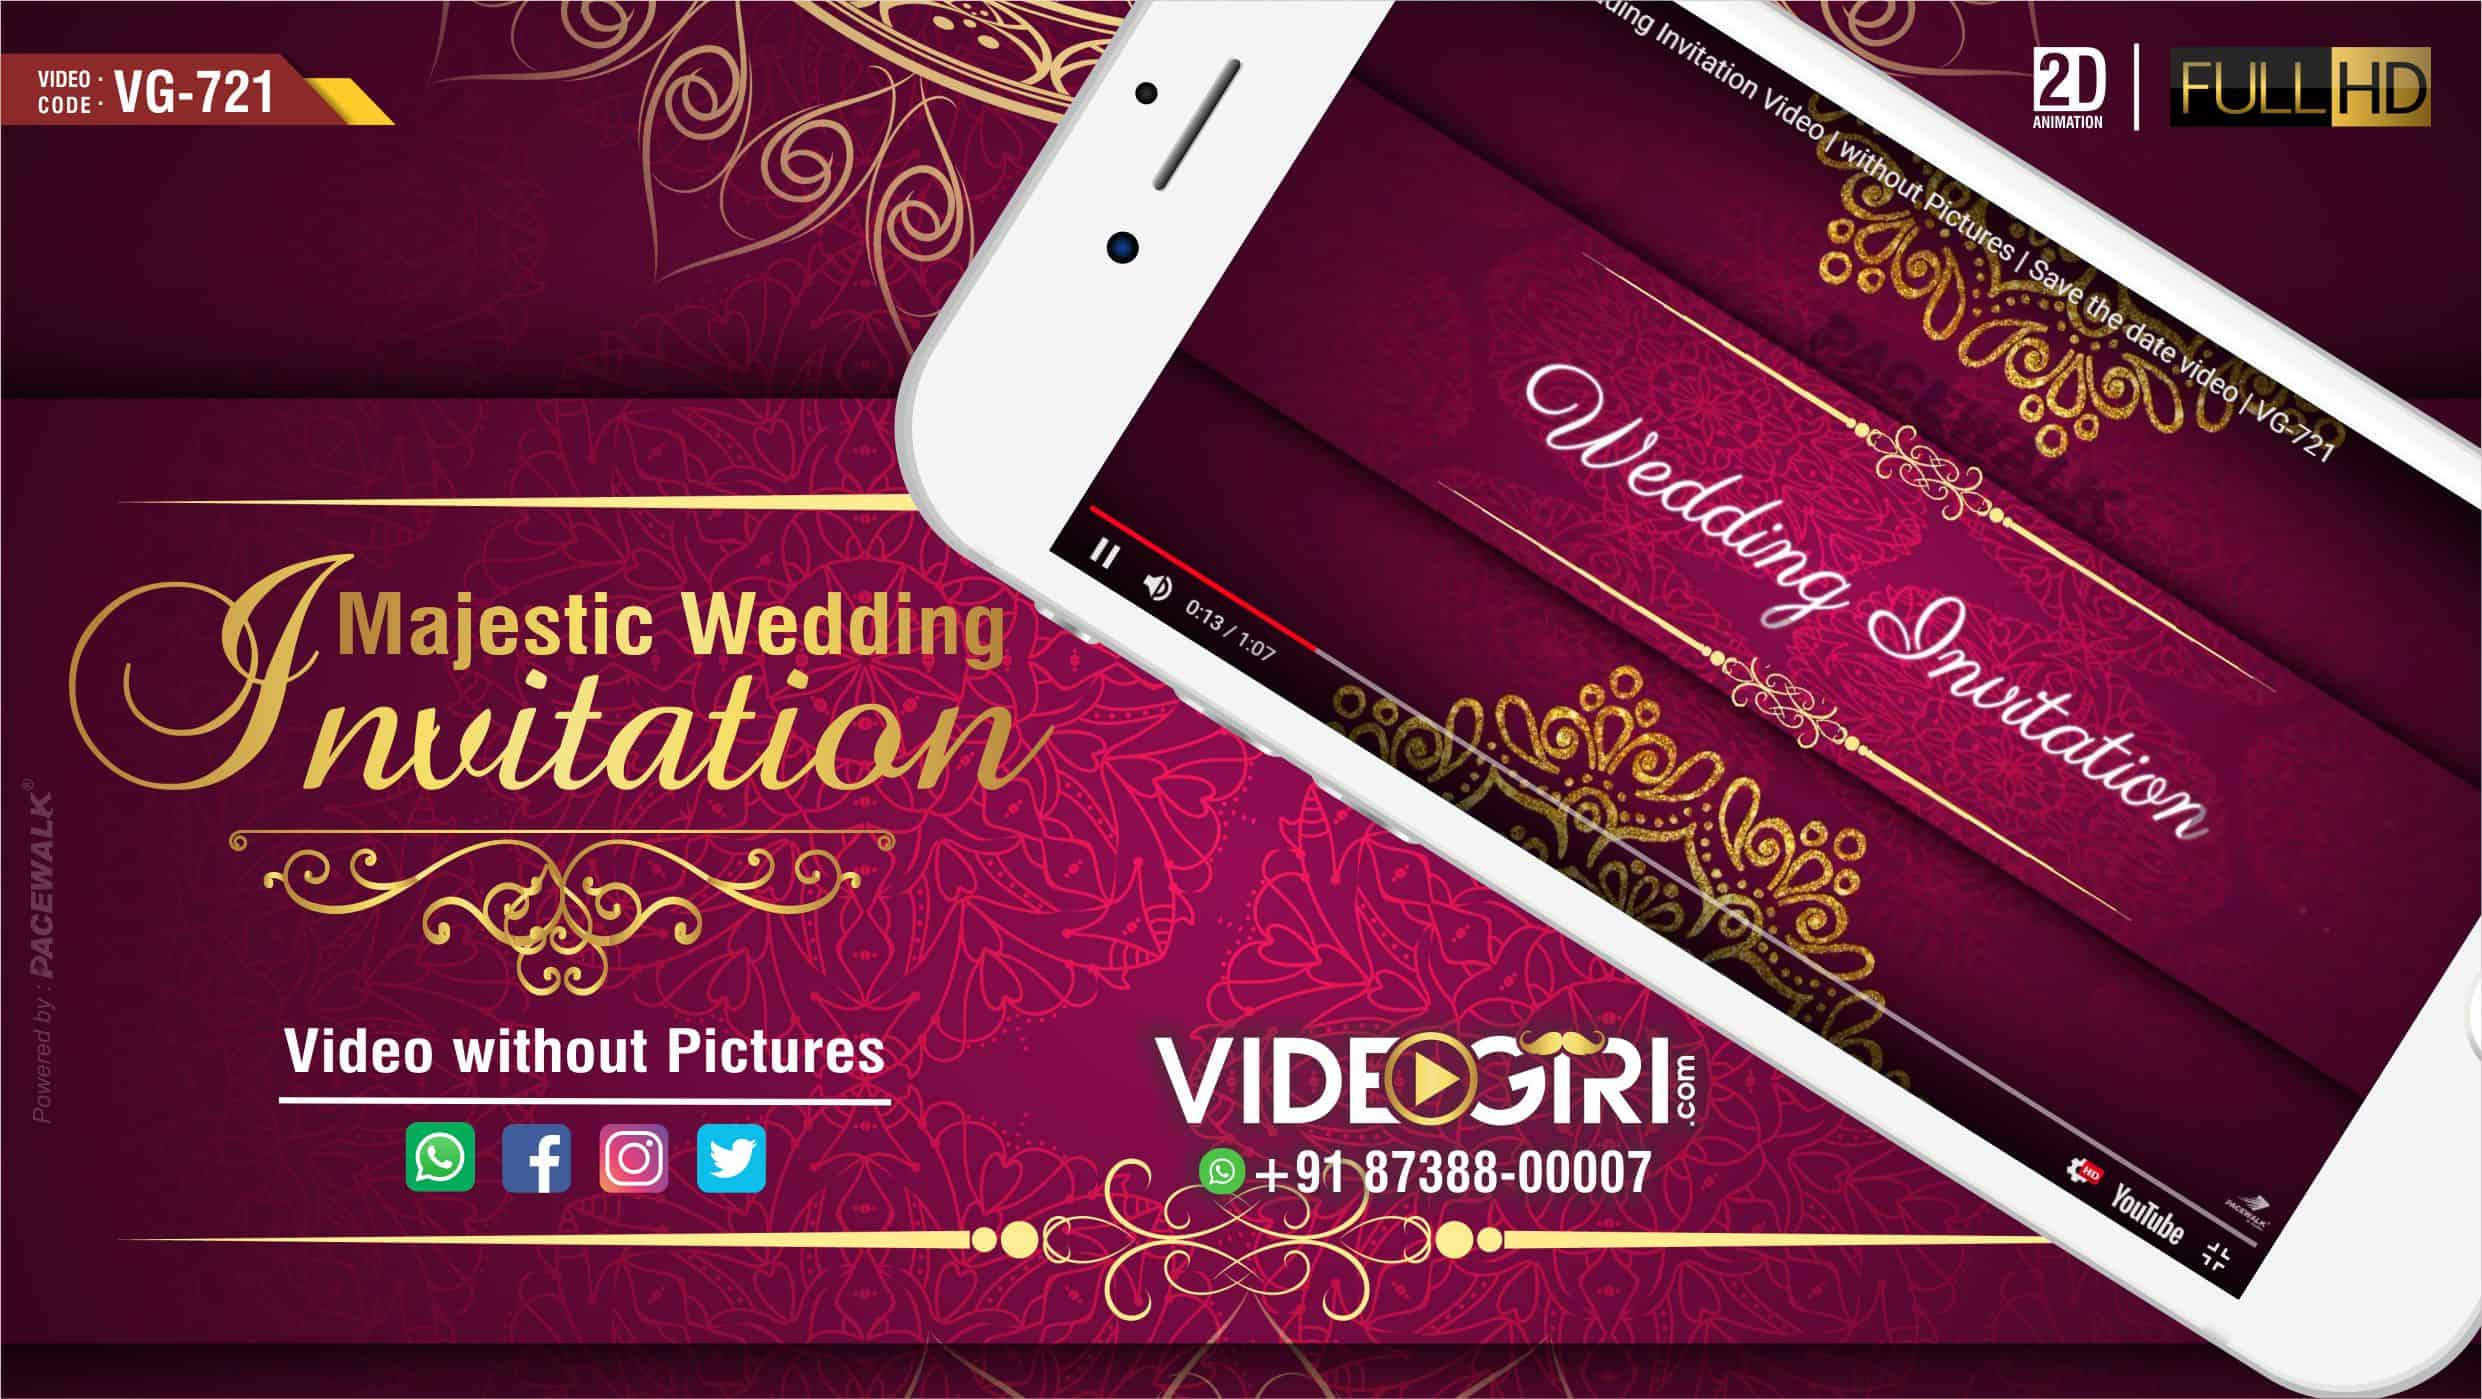 Majestic Wedding Invitation Video without Pictures Save the date video